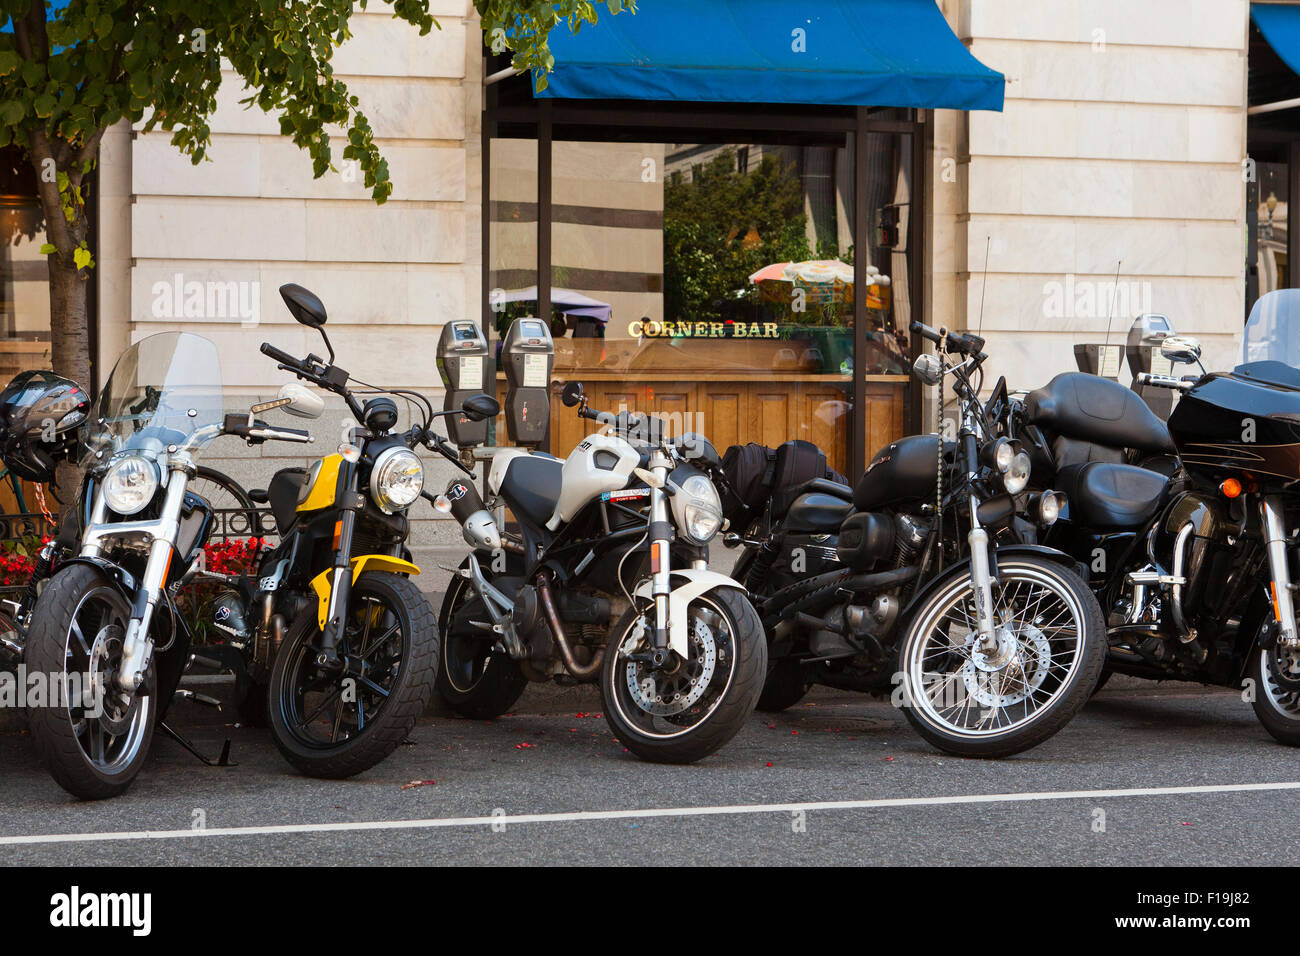 Motorcycles parked roadside - USA - Stock Image